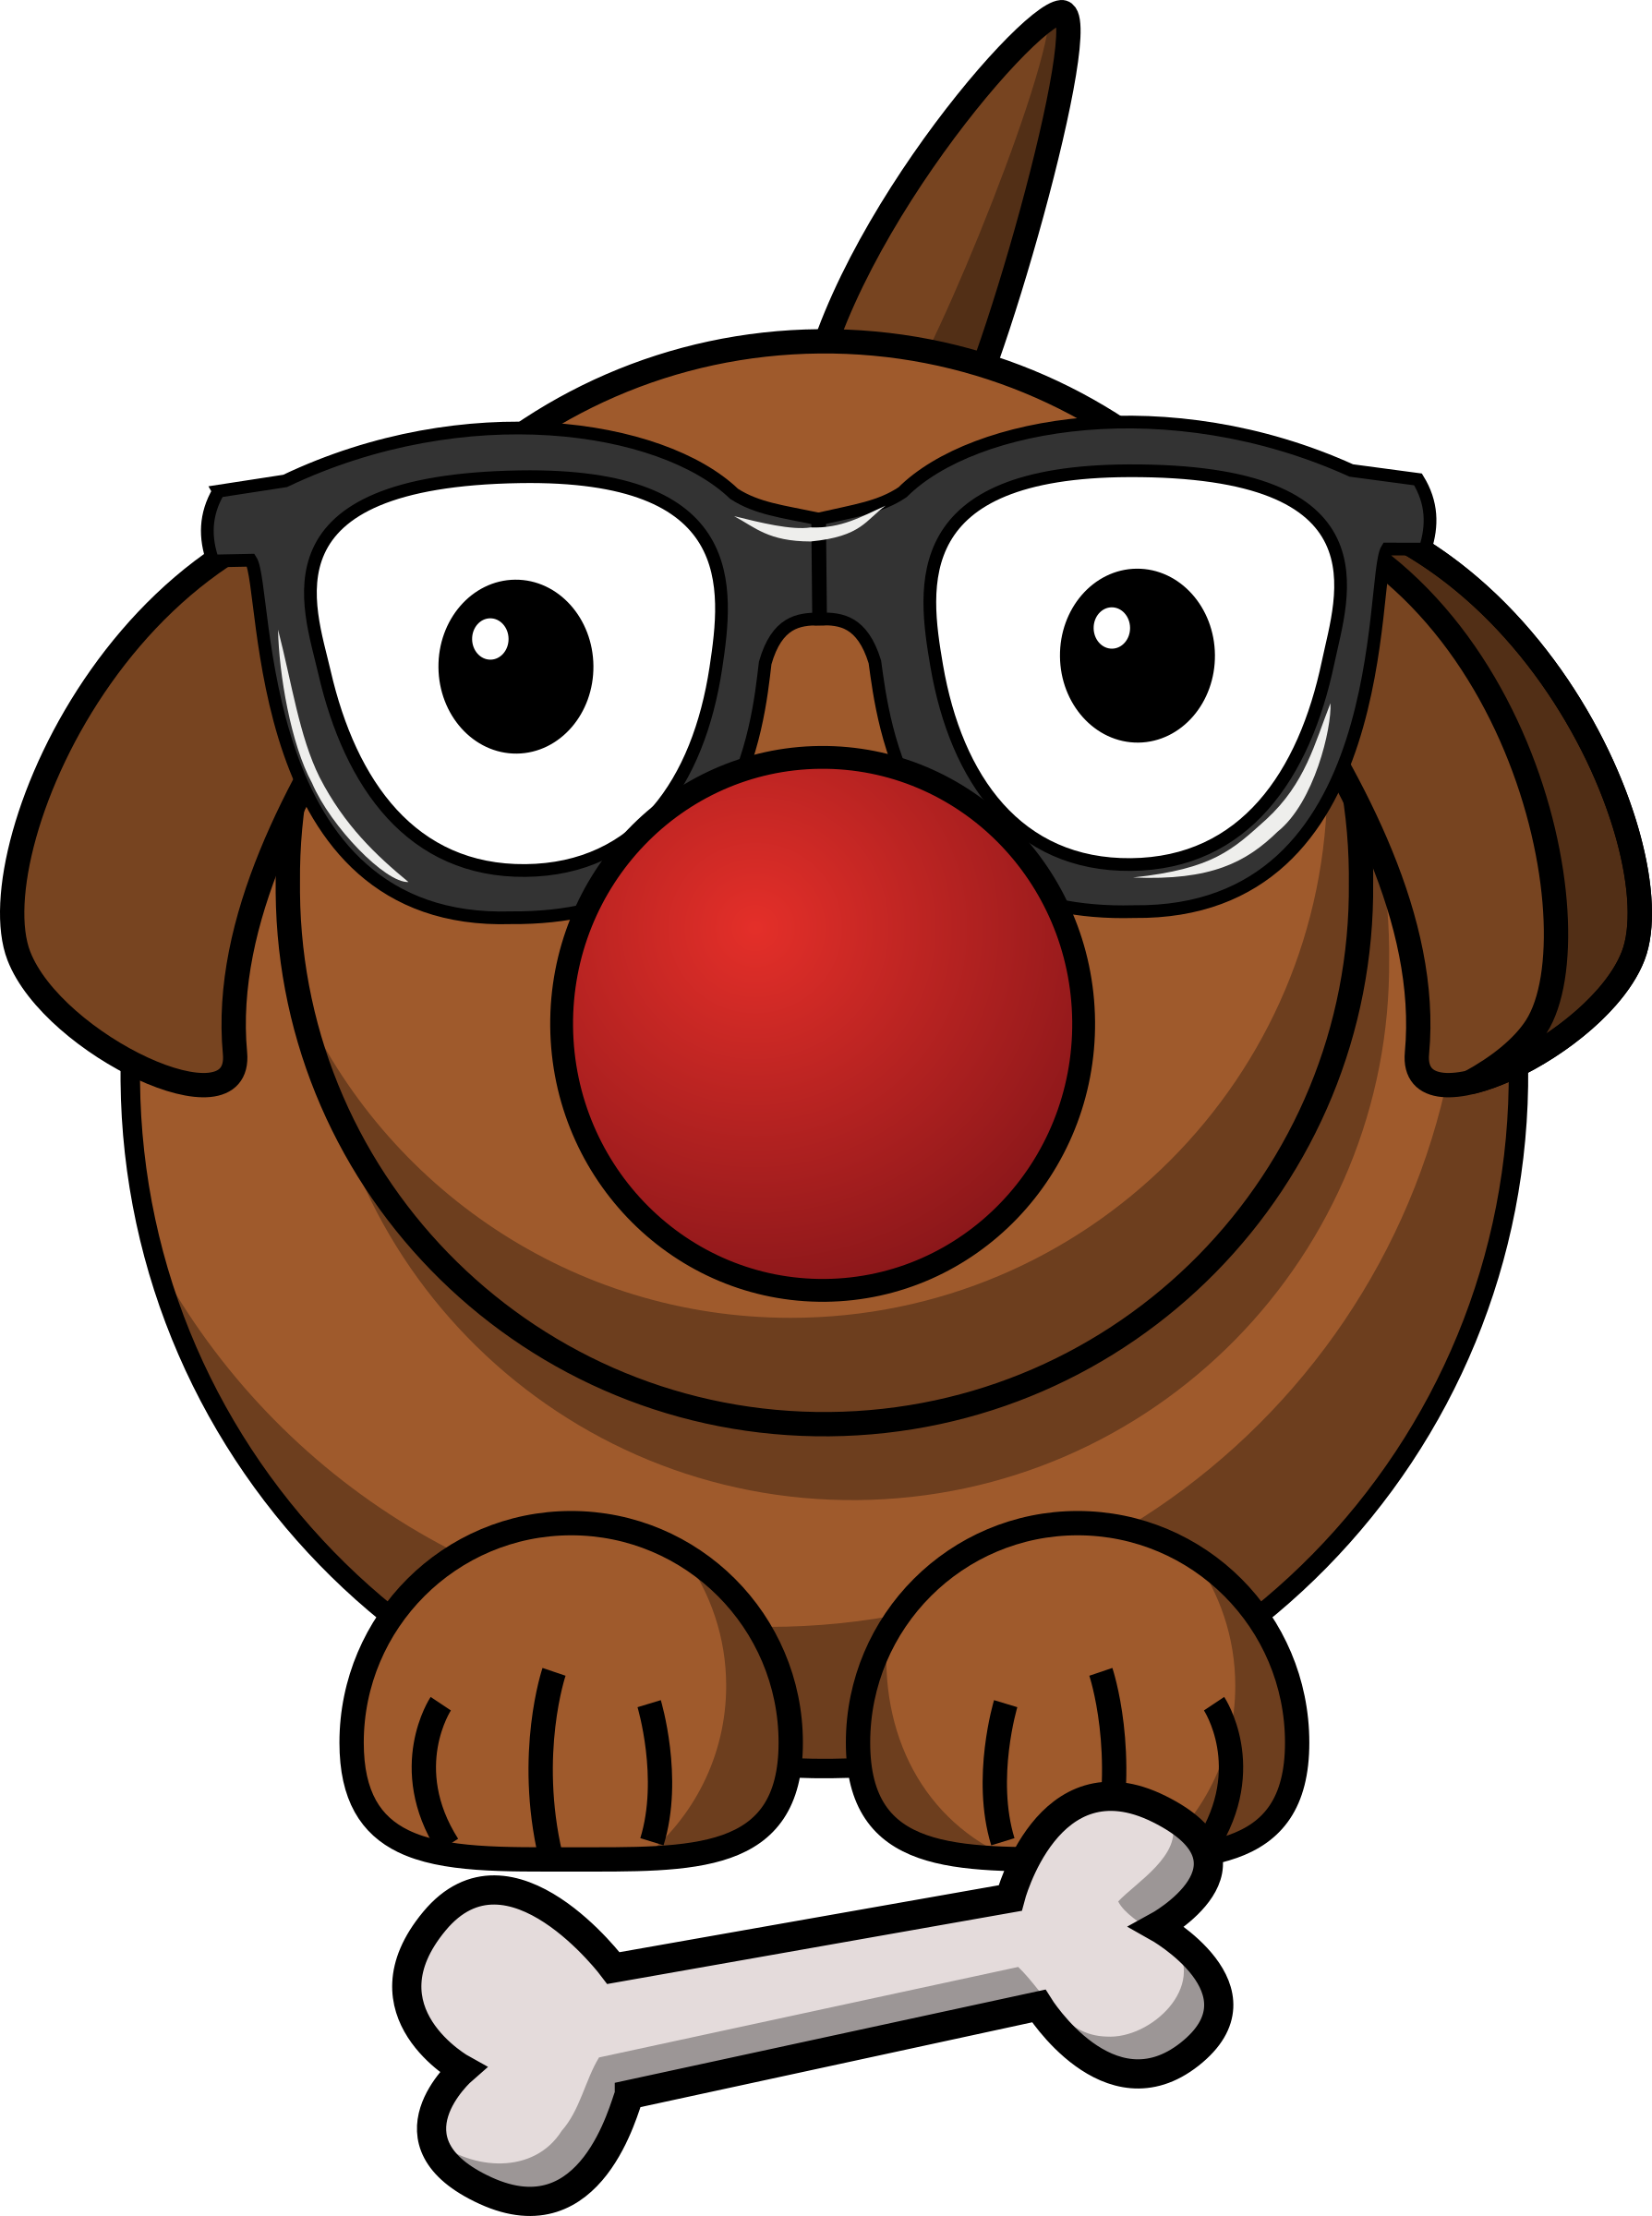 clowny dog by contactr